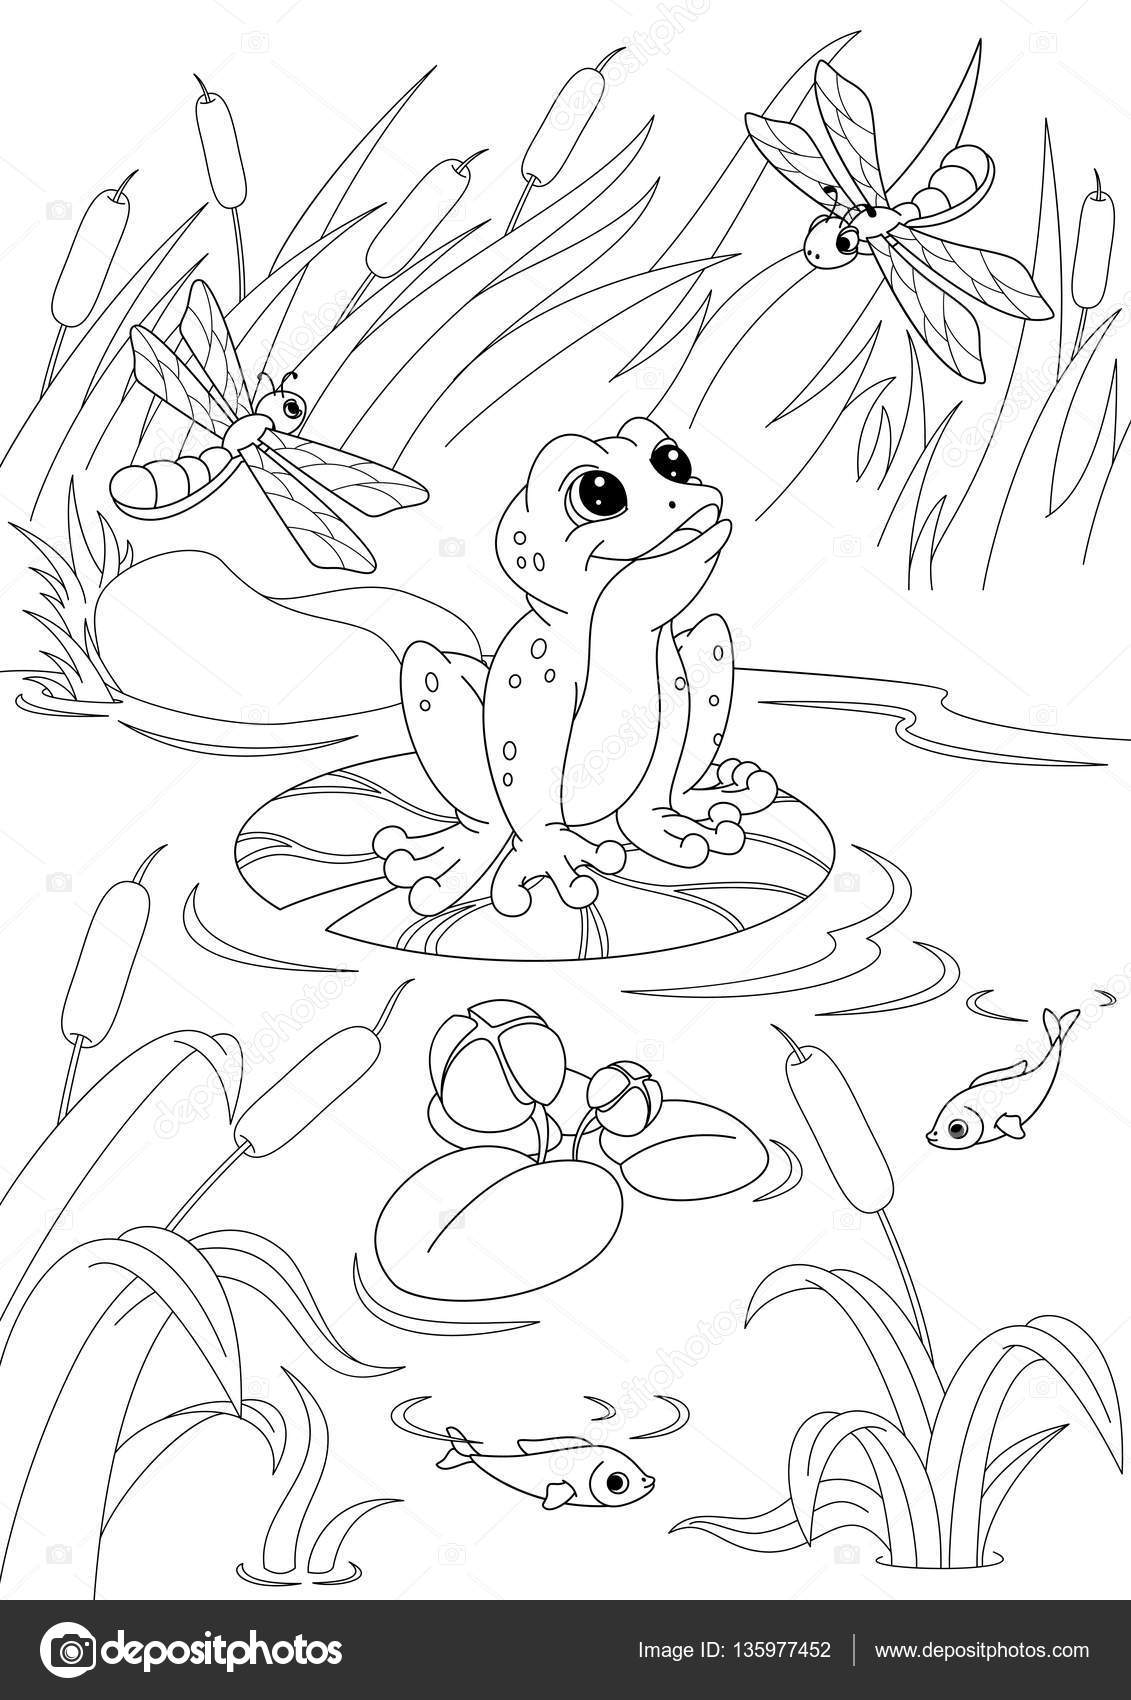 Pond Coloring Page — Stock Vector © Malyaka #135977452